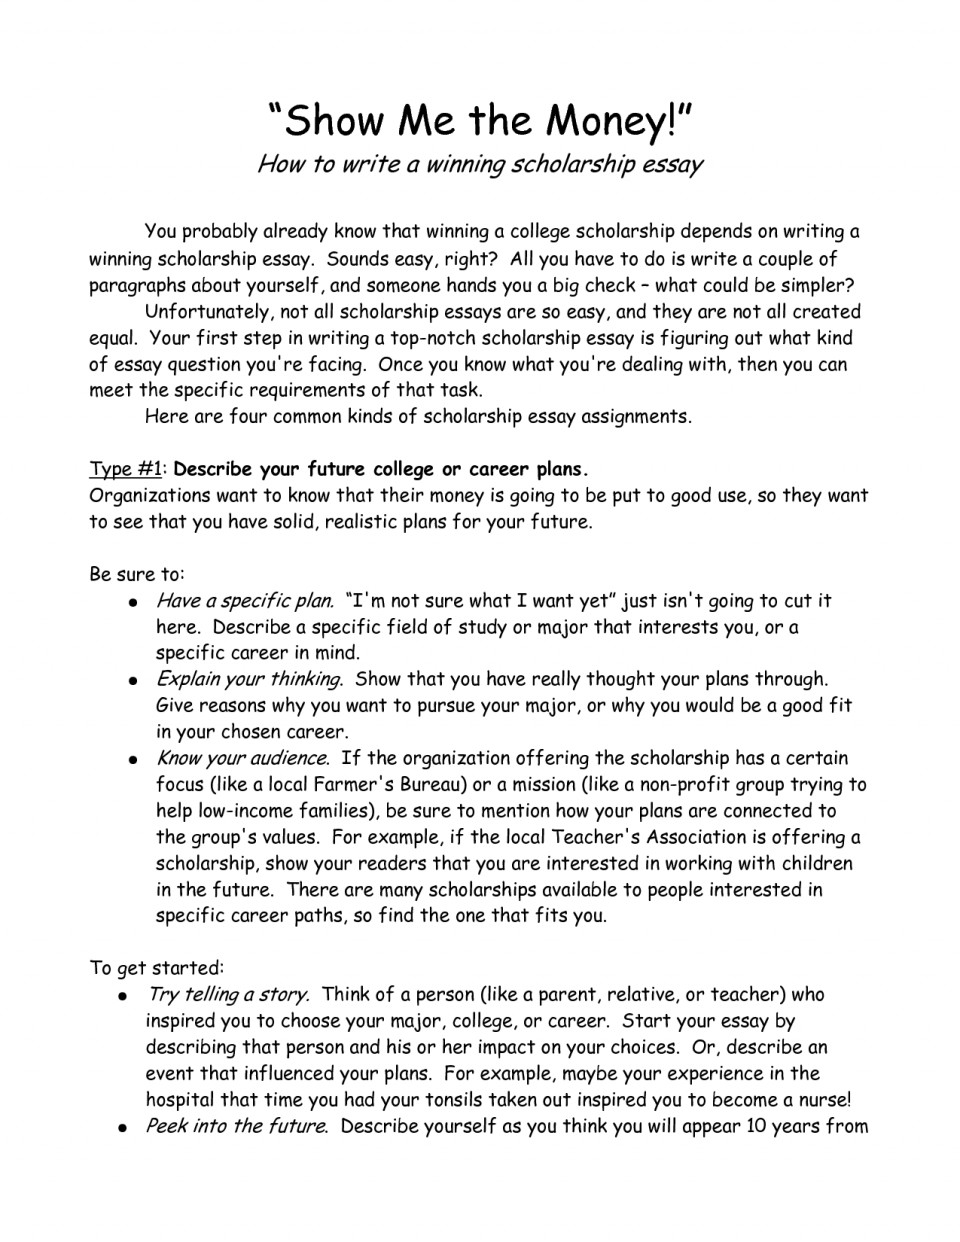 001 Scholarship Essays Essay Unusual Prompts 2018 About Goals Scholarships Without 2019 960